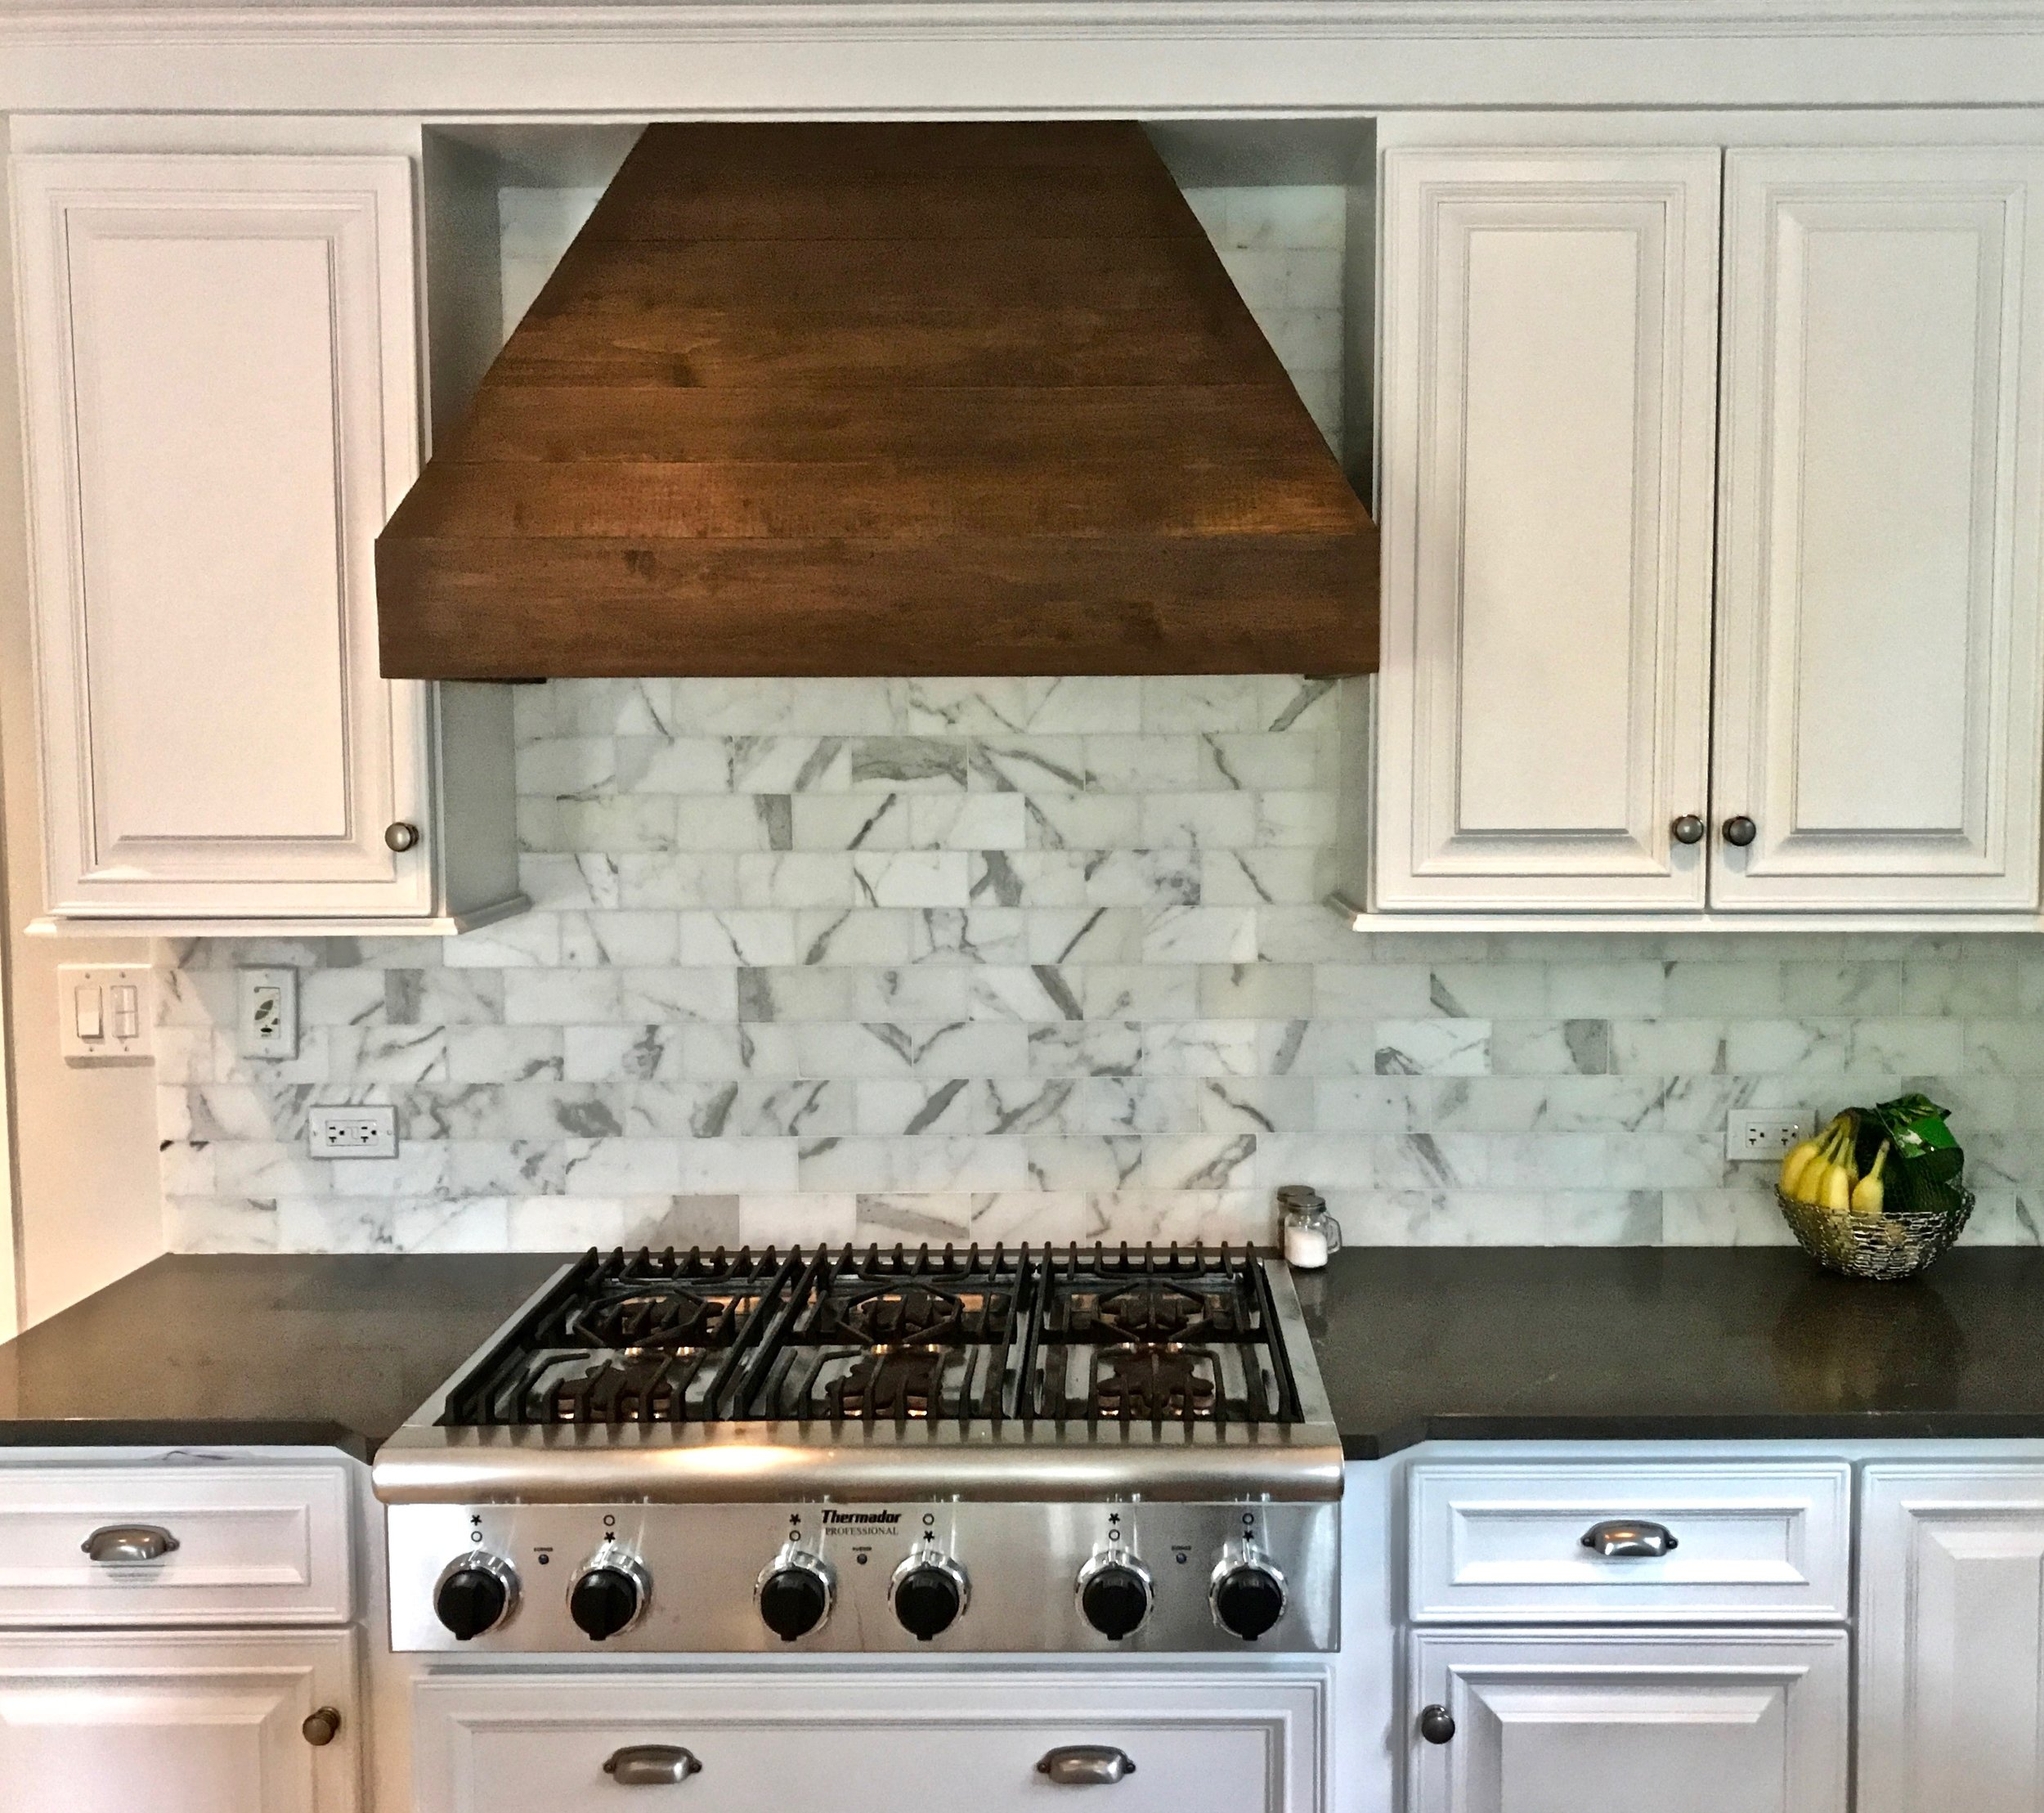 We clad the hood in wood with a custom stain to match the new shelving near the window. A view of the hood surrounded by new hardware, sink faucet, freshly painted cabinets and walls, Calacatta backsplash, and new countertops.